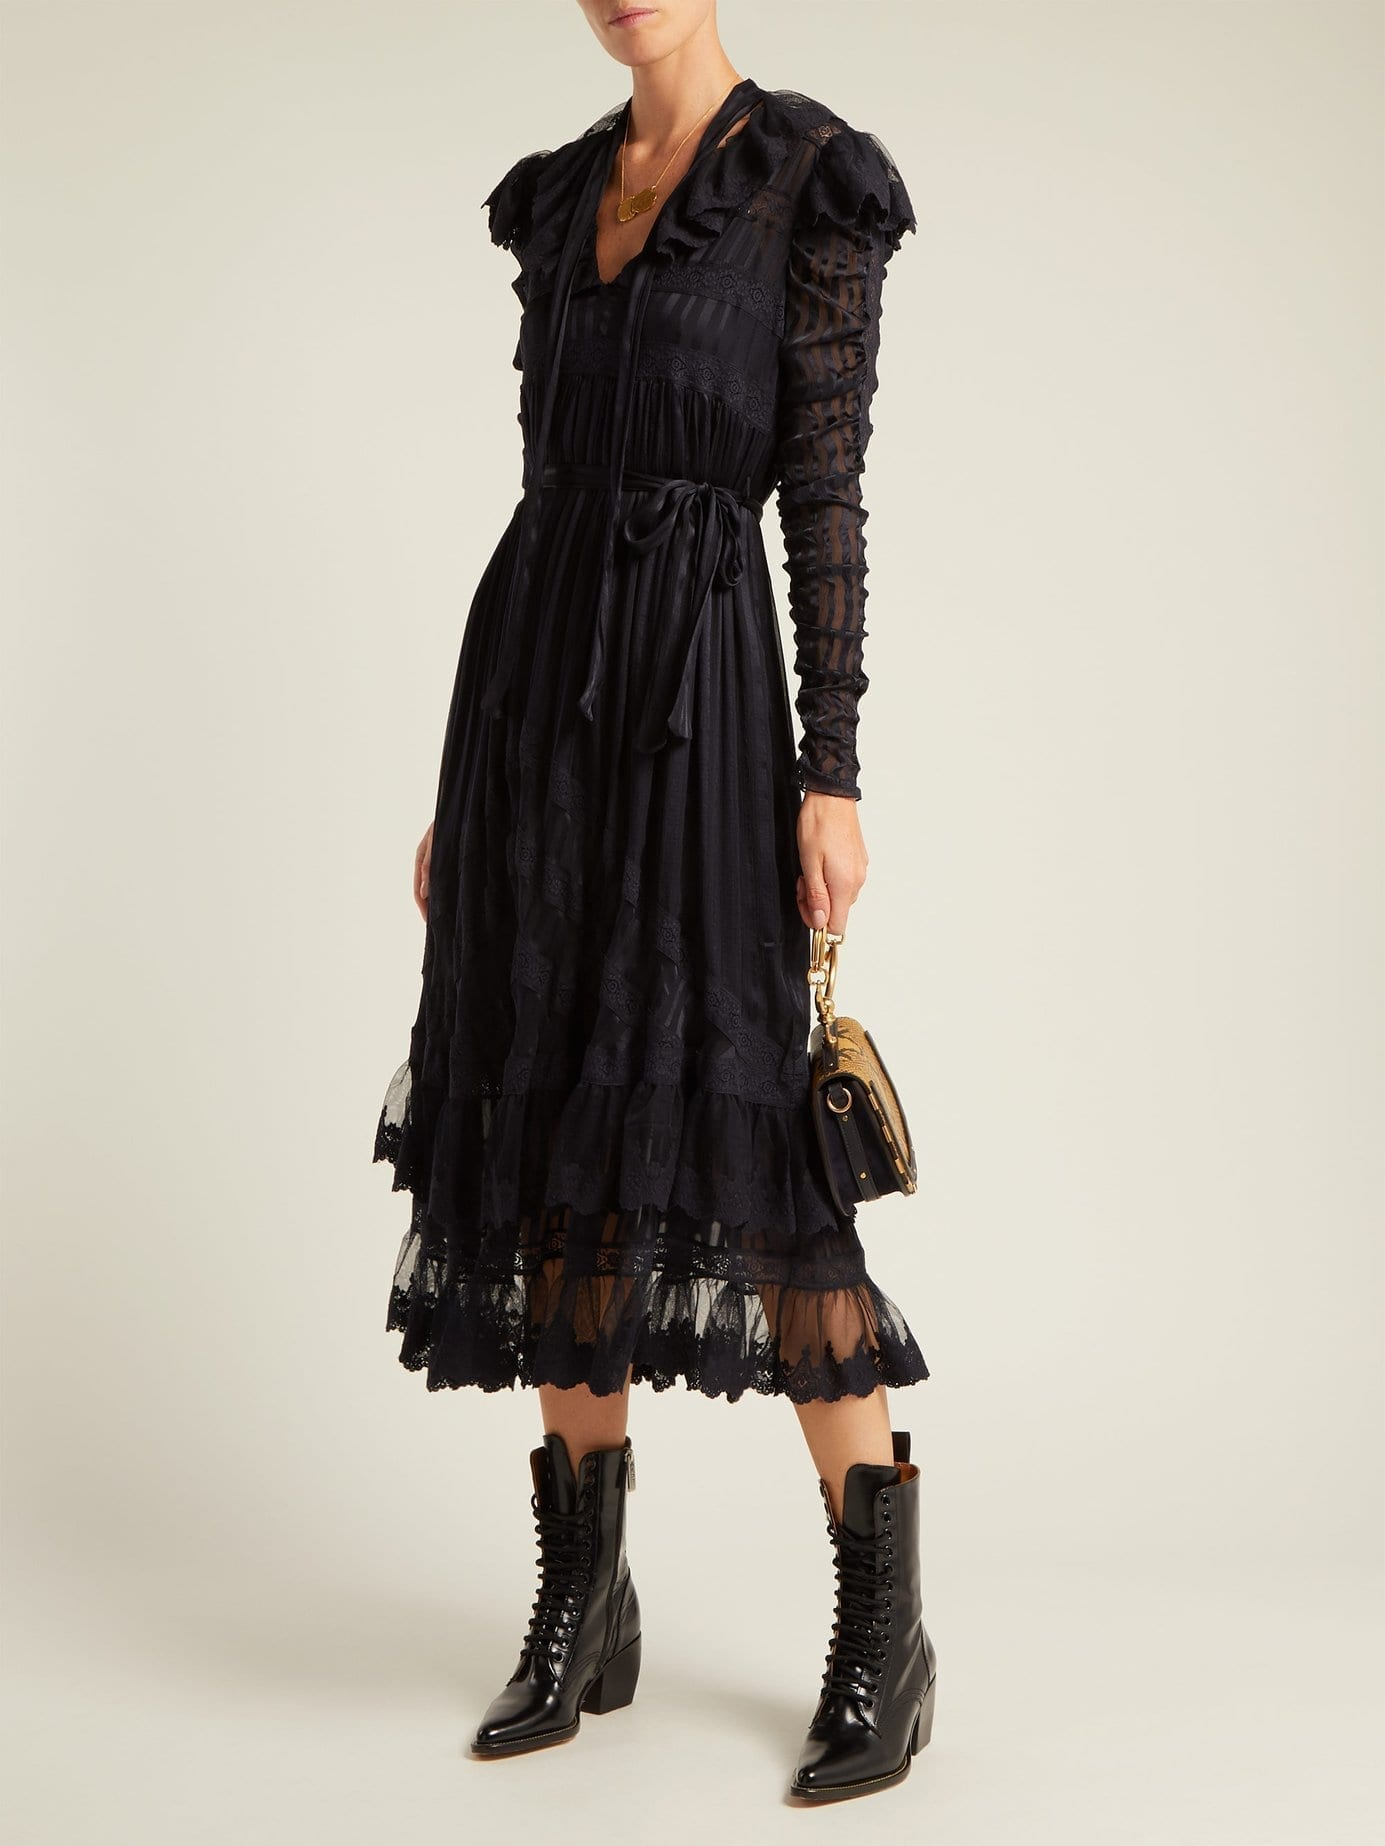 7970fa2c006 ZIMMERMANN Spring Summer 2018 Collection Archives - We Select Dresses